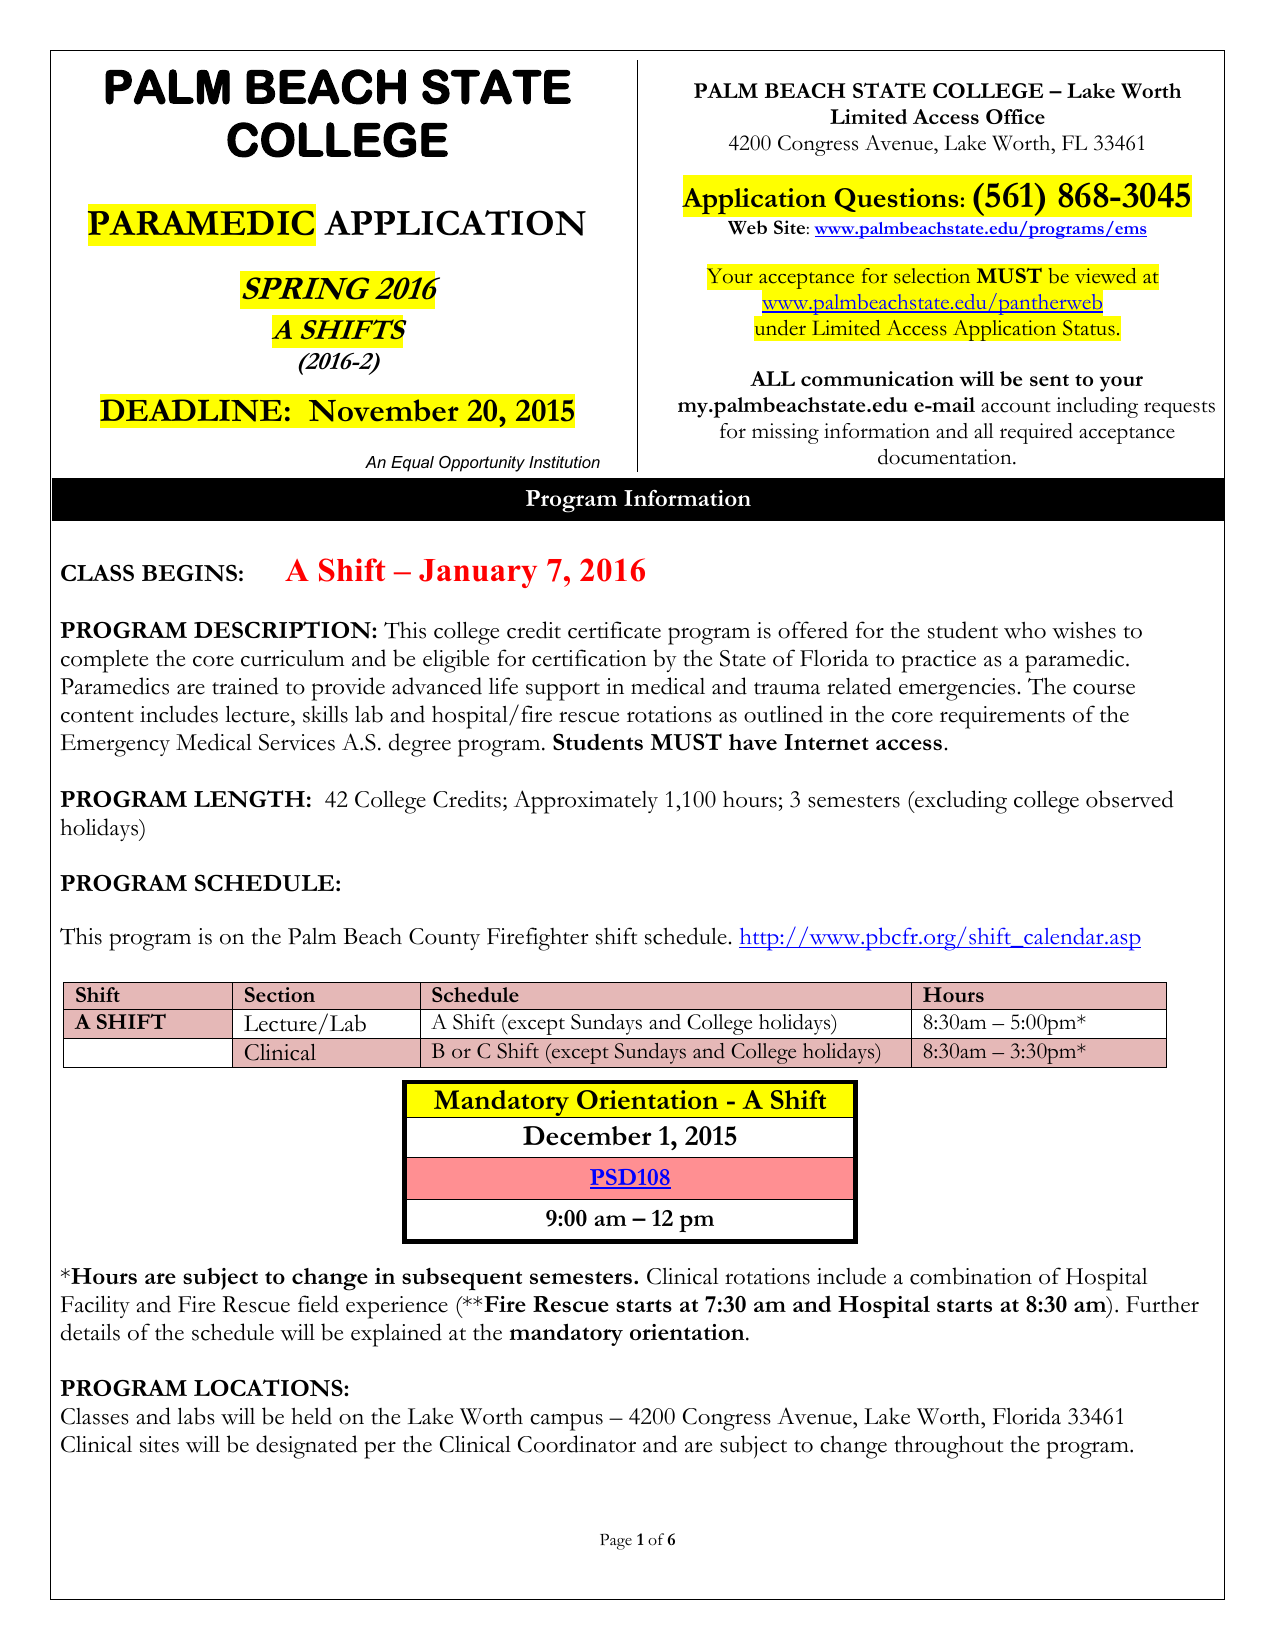 Nursing application palm beach state college xflitez Images